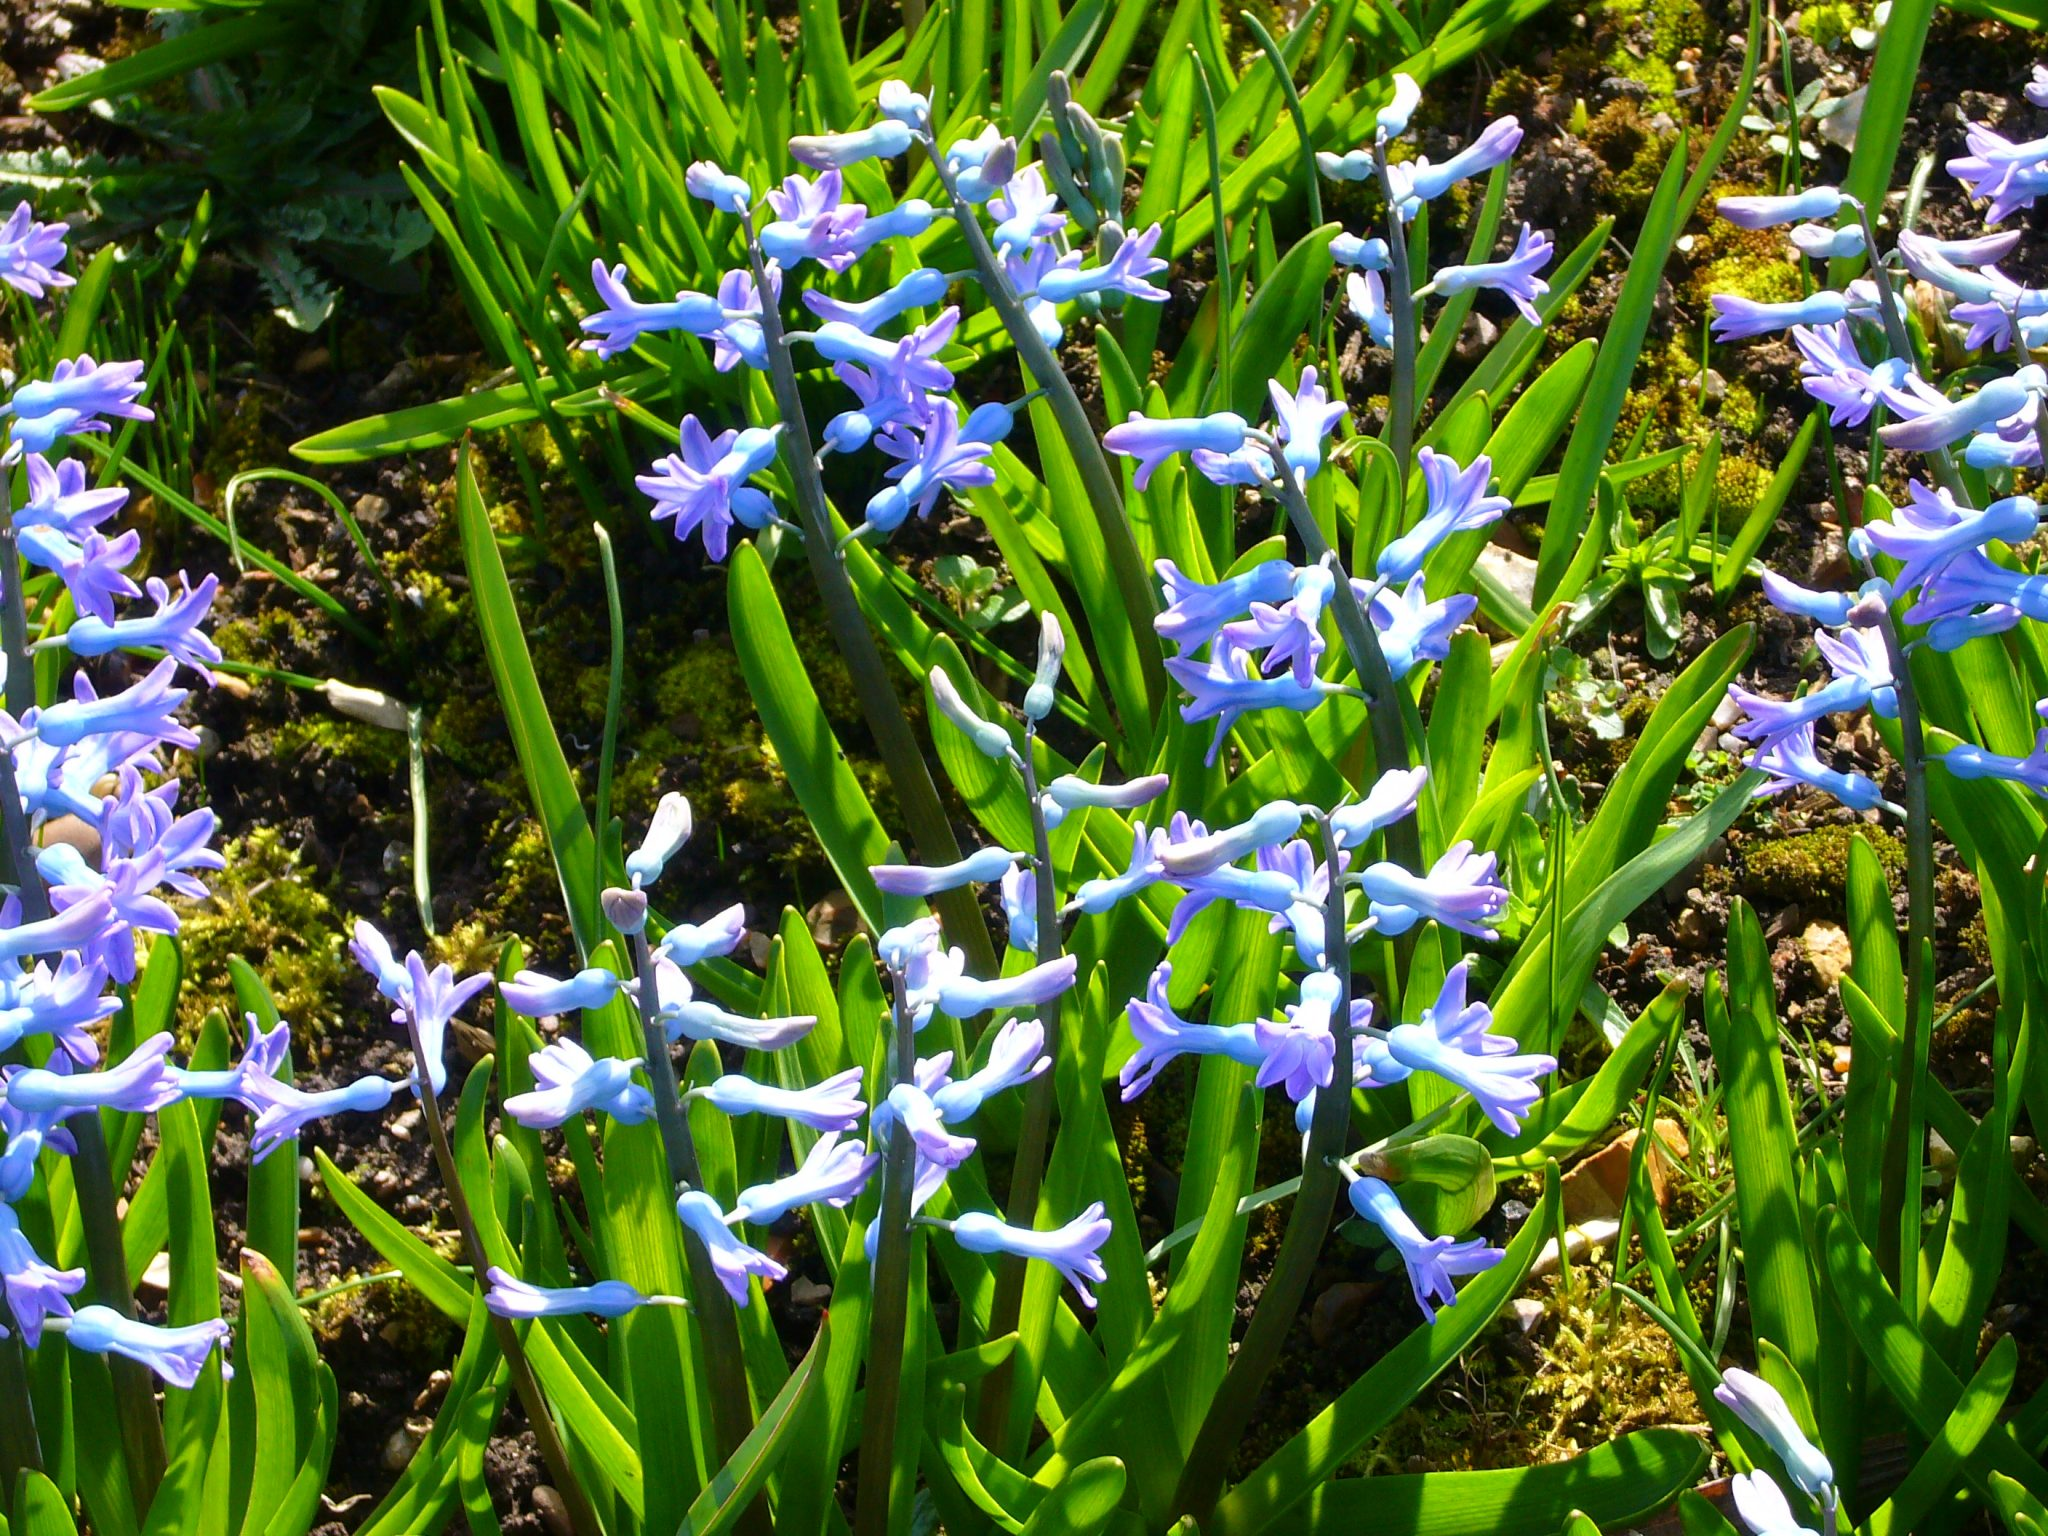 Wild Hyacinth (Hyacinthus orientalis) in Cambridge University Botanic Garden. Photo Magnus Manske, May 2, 2009. Wikimedia Commons.